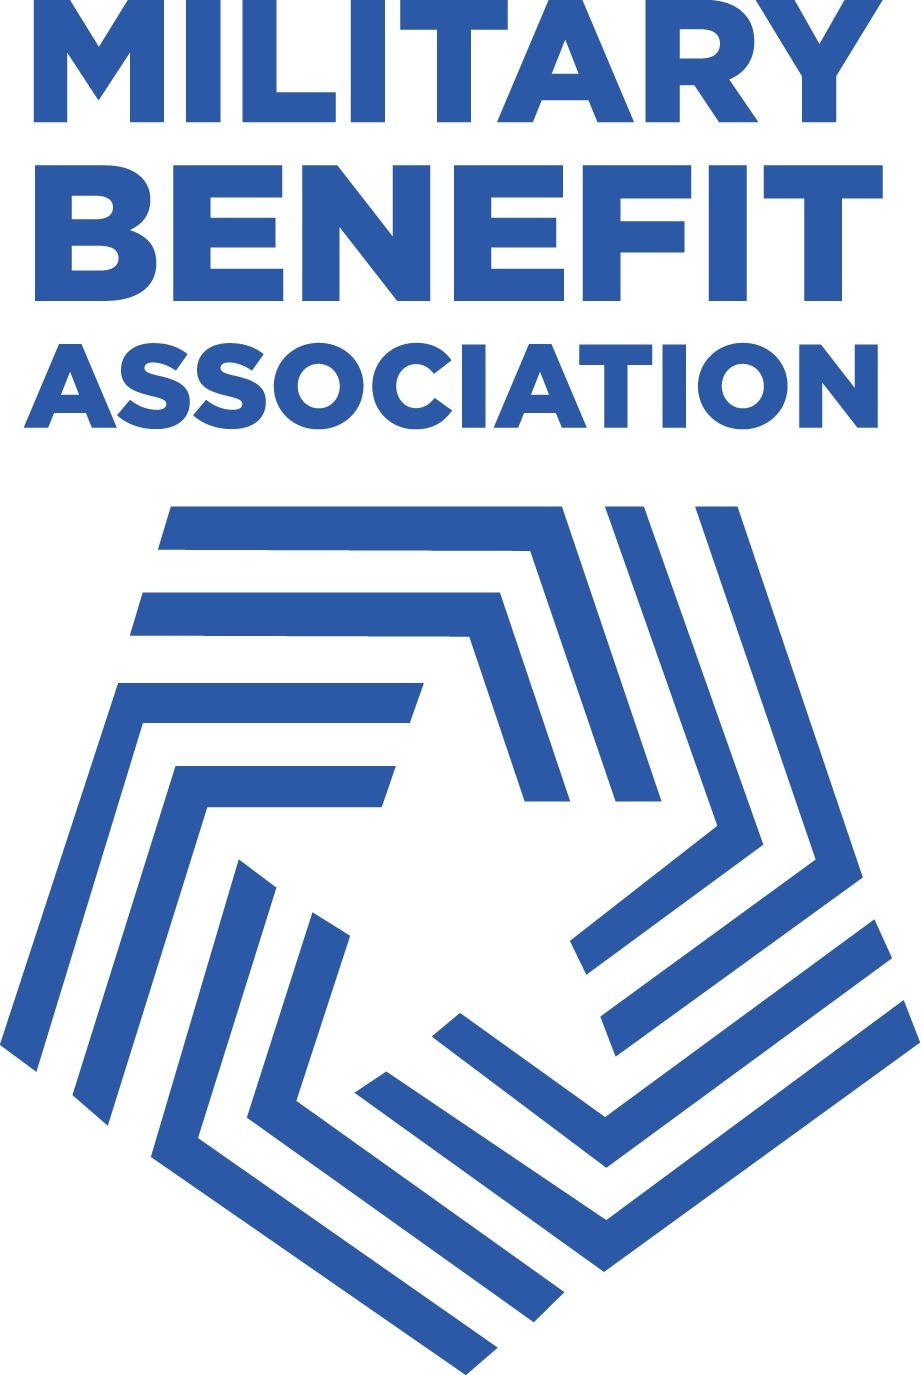 Image result for military benefit association